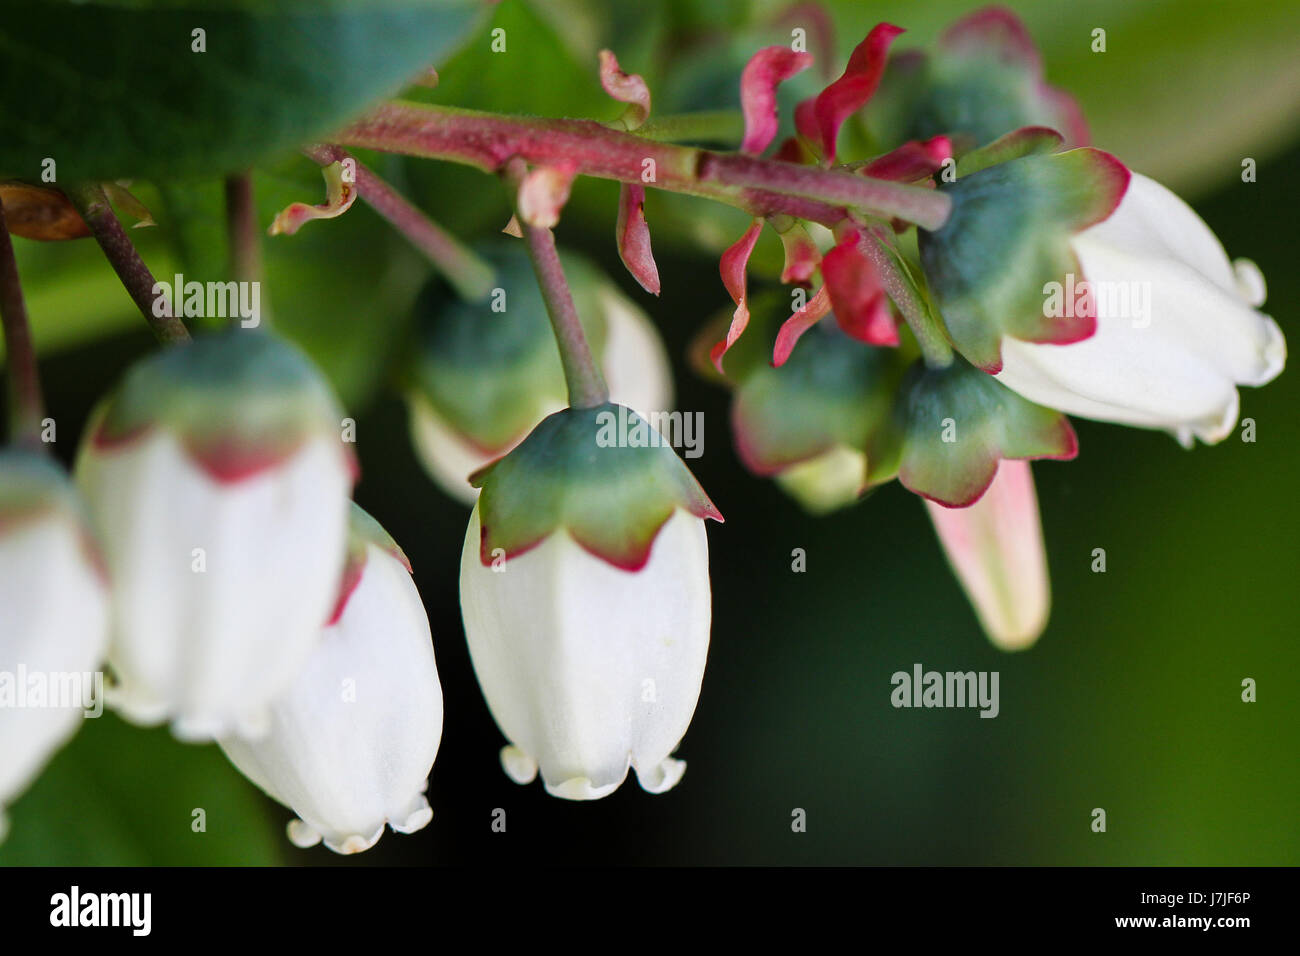 Closeup Of Blueberry Flowers Bright White Bell Shaped Flower Stock